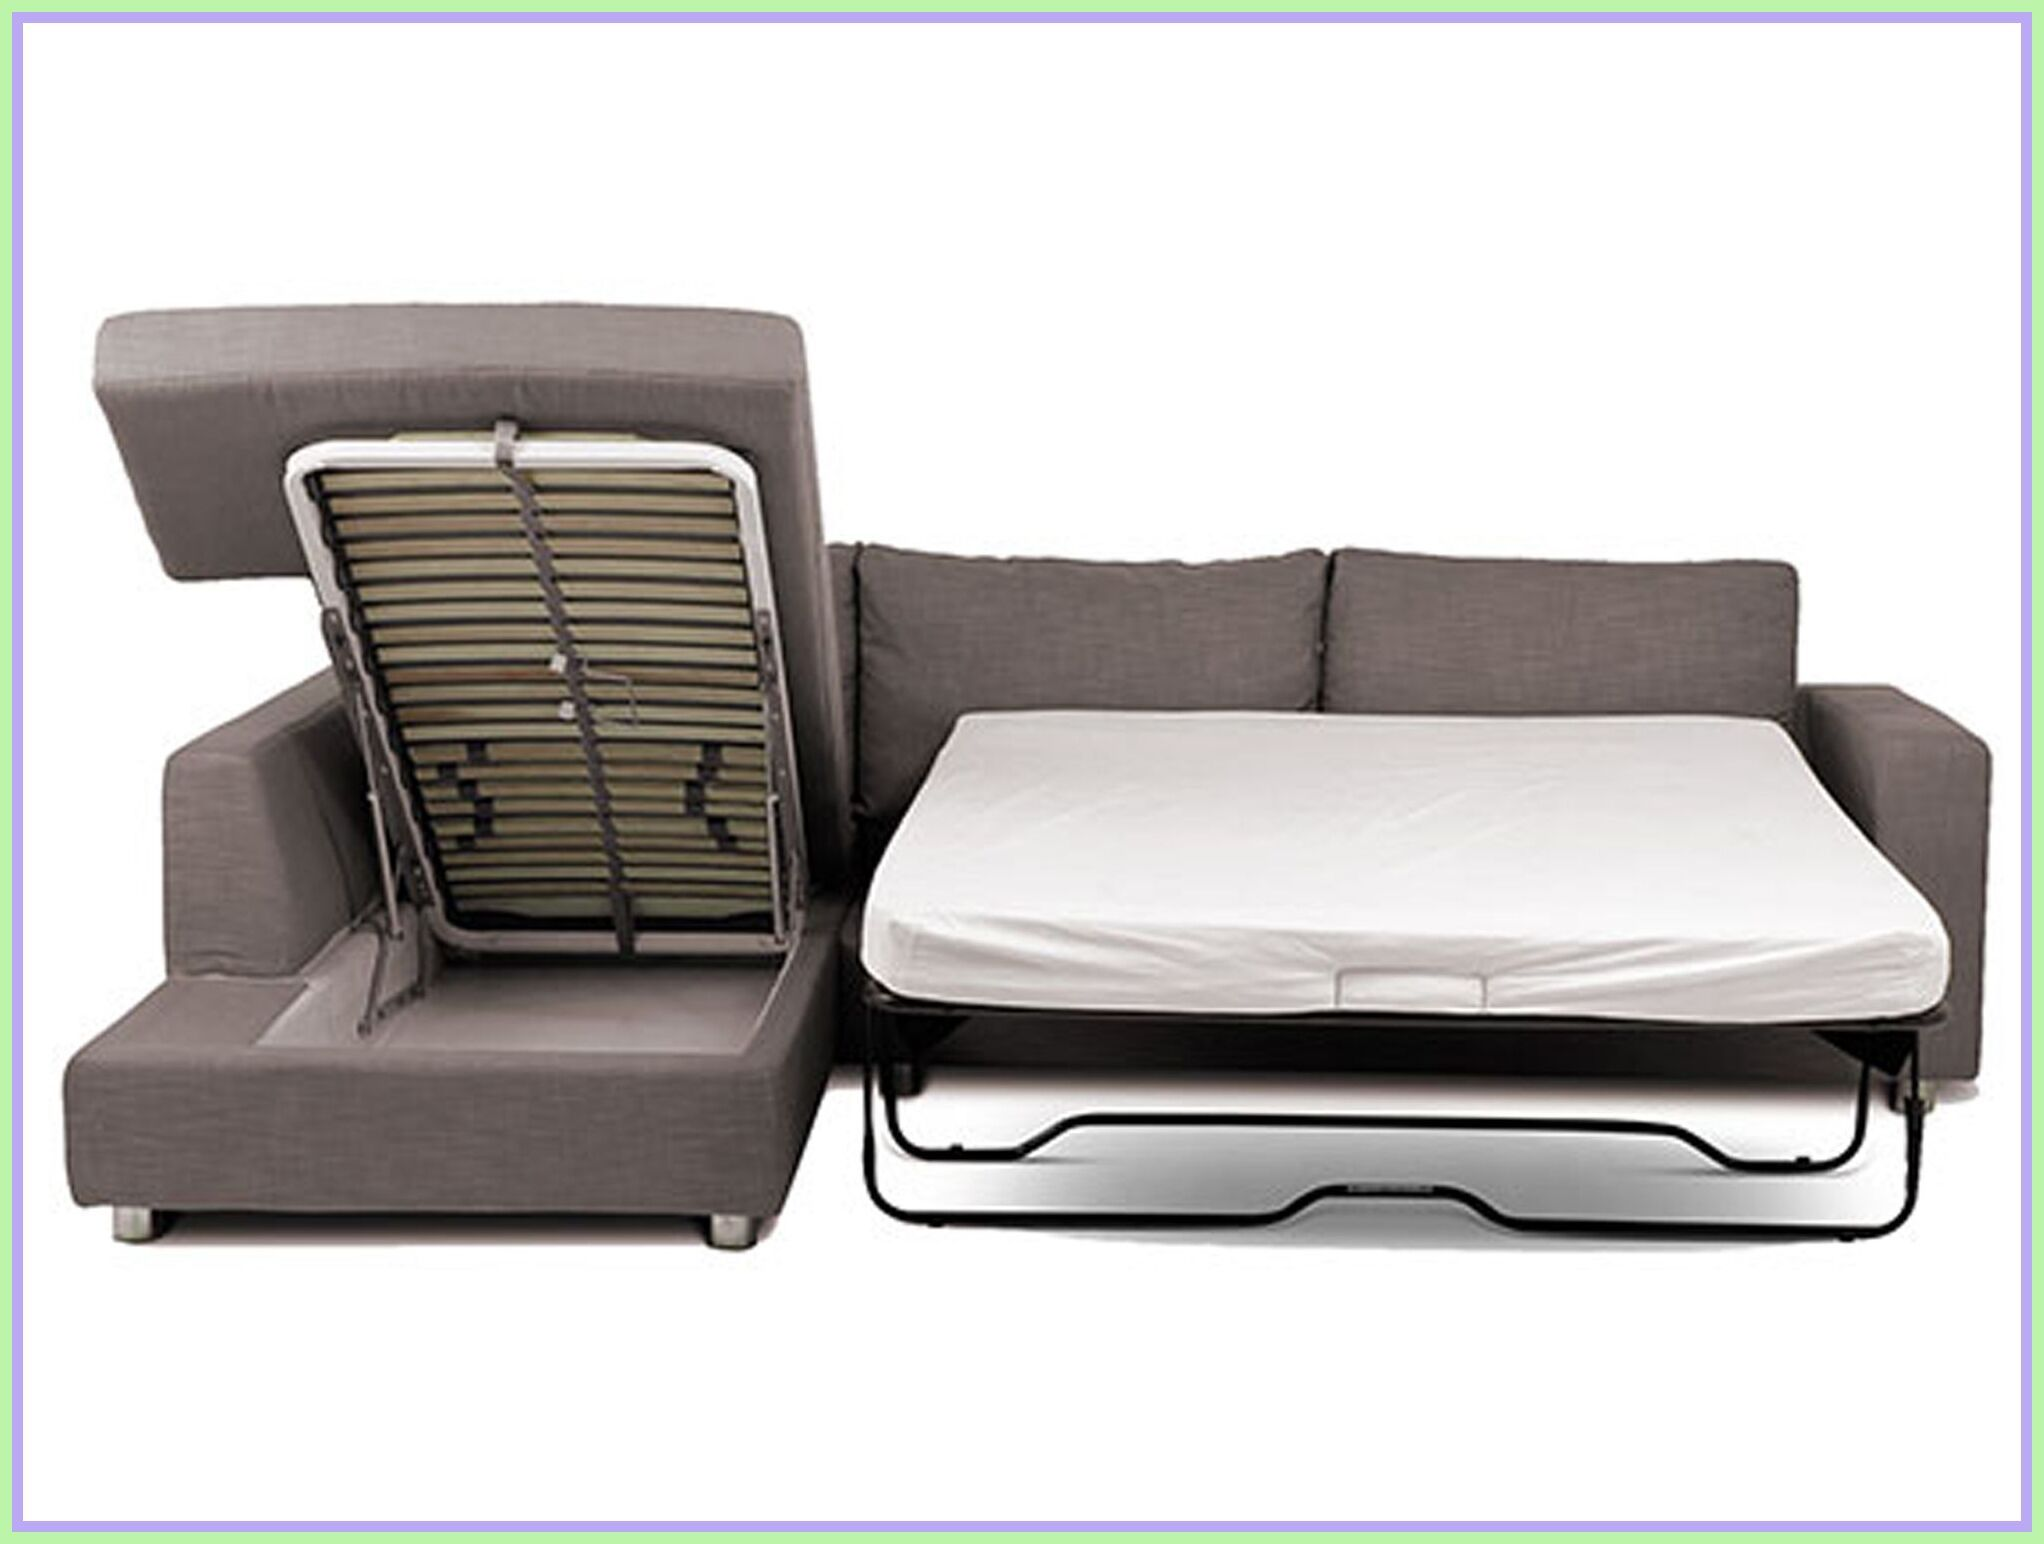 115 Reference Of Small Corner Couch With Storage In 2020 Corner Sofa Bed With Storage Sofa Bed With Storage Sofa Bed With Chaise